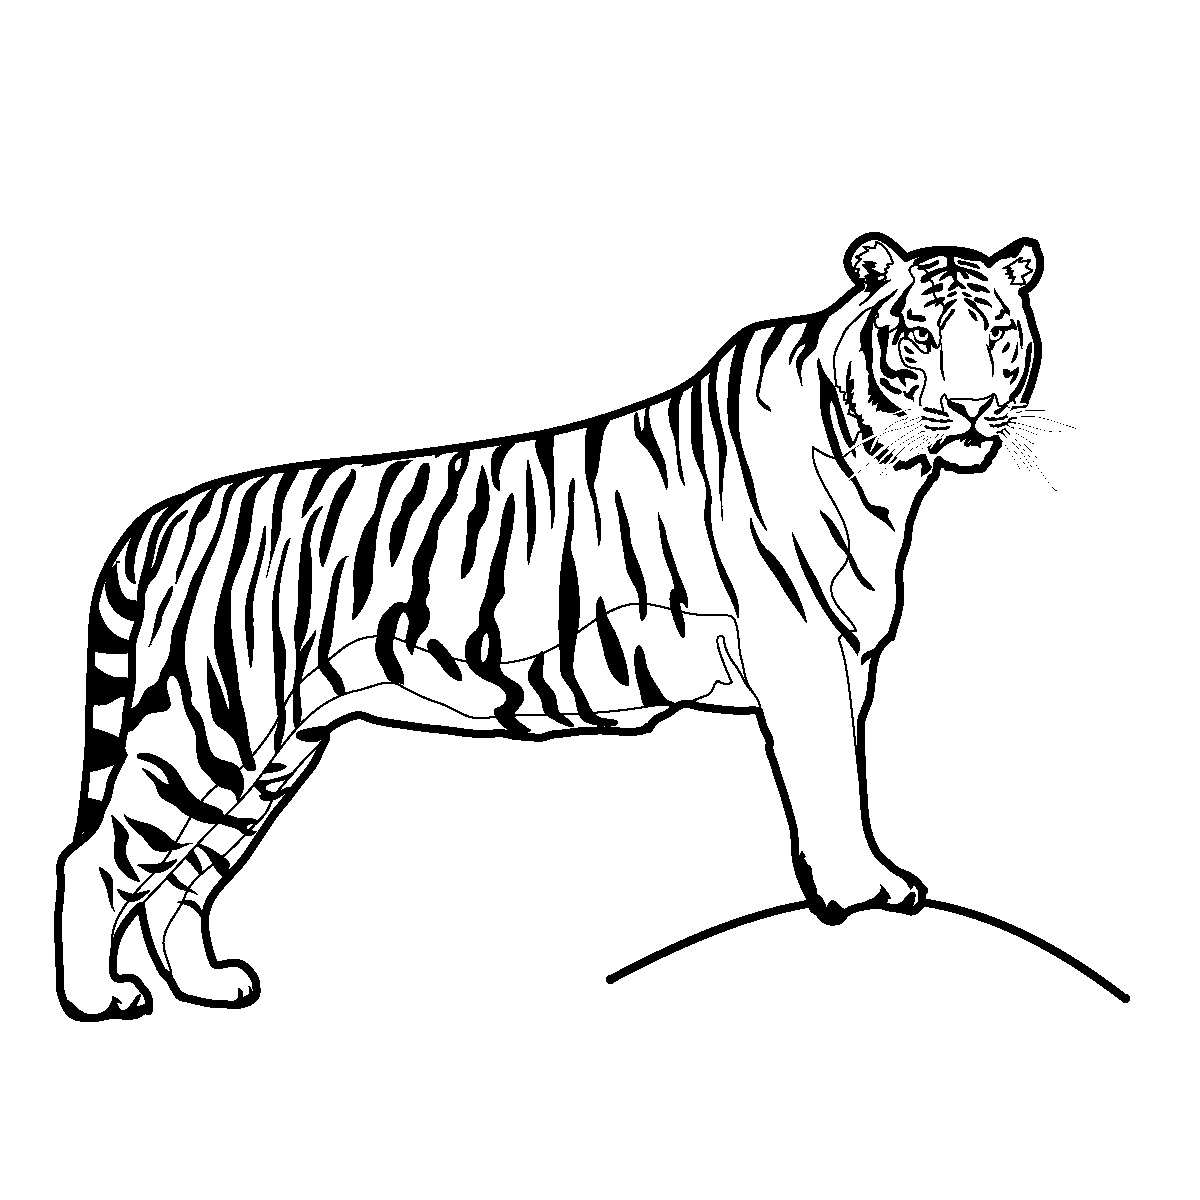 1200x1200 Baby Tiger Clip Art Black And White Cliparts